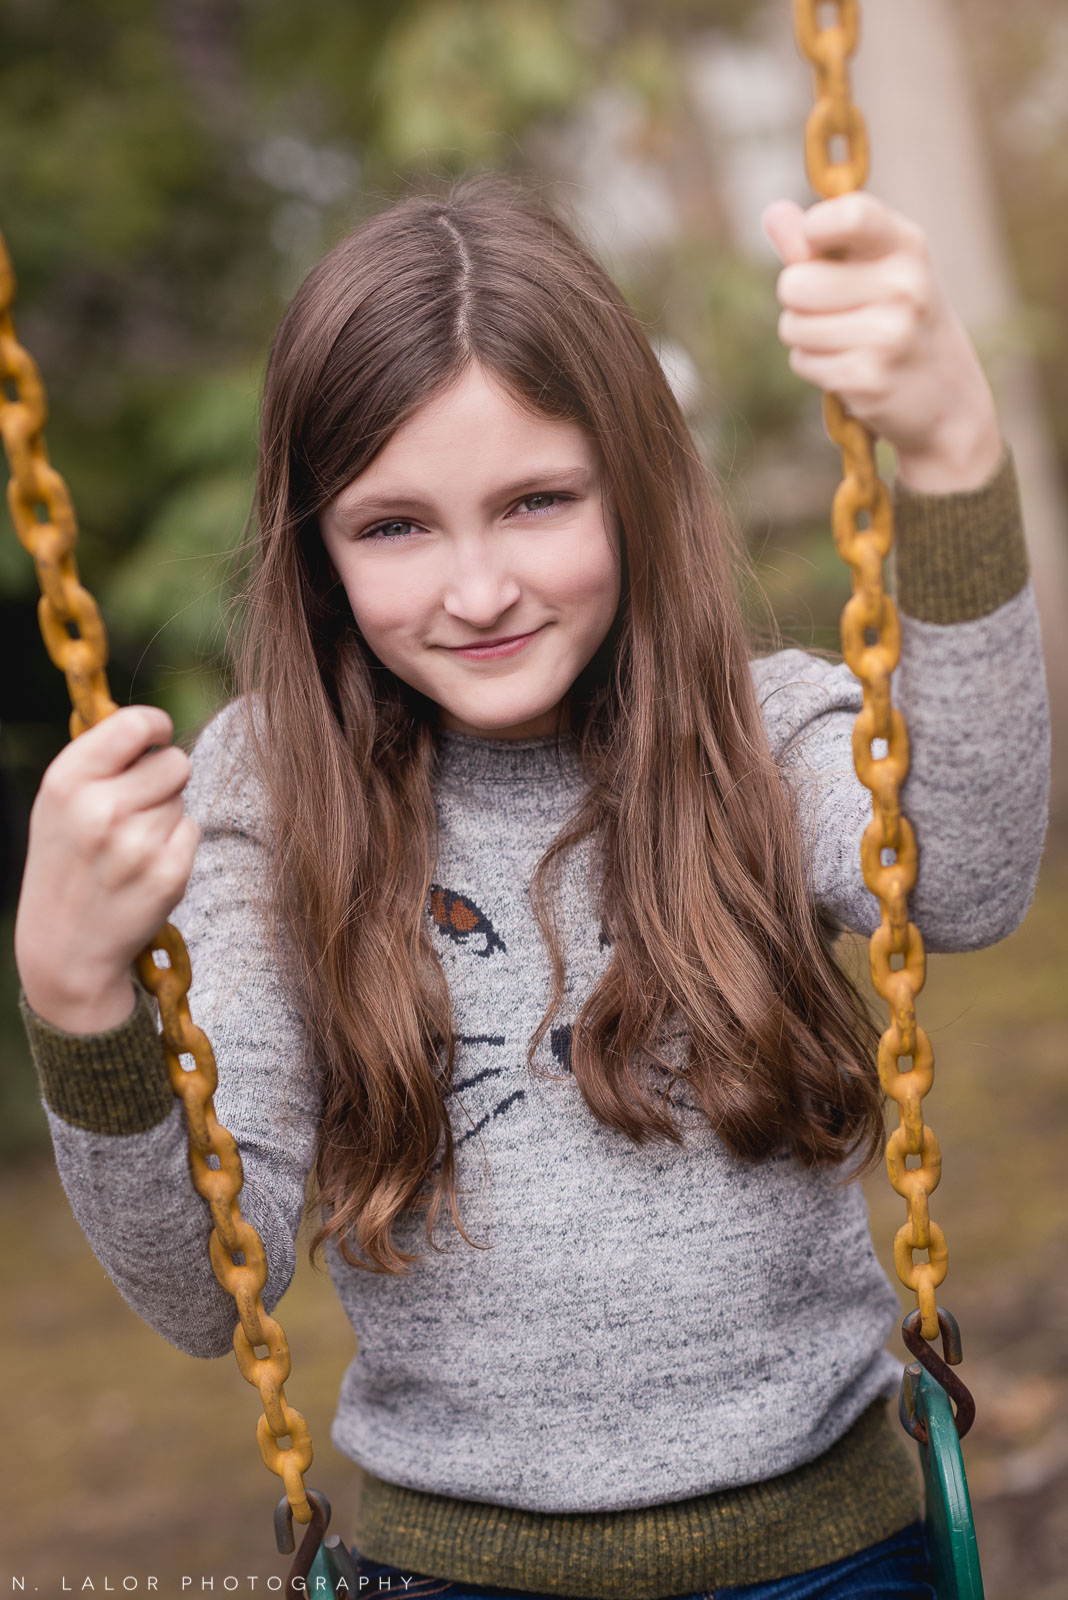 Lifestyle portrait of a tween girl on a swing by N. Lalor Photography. Darien, CT.